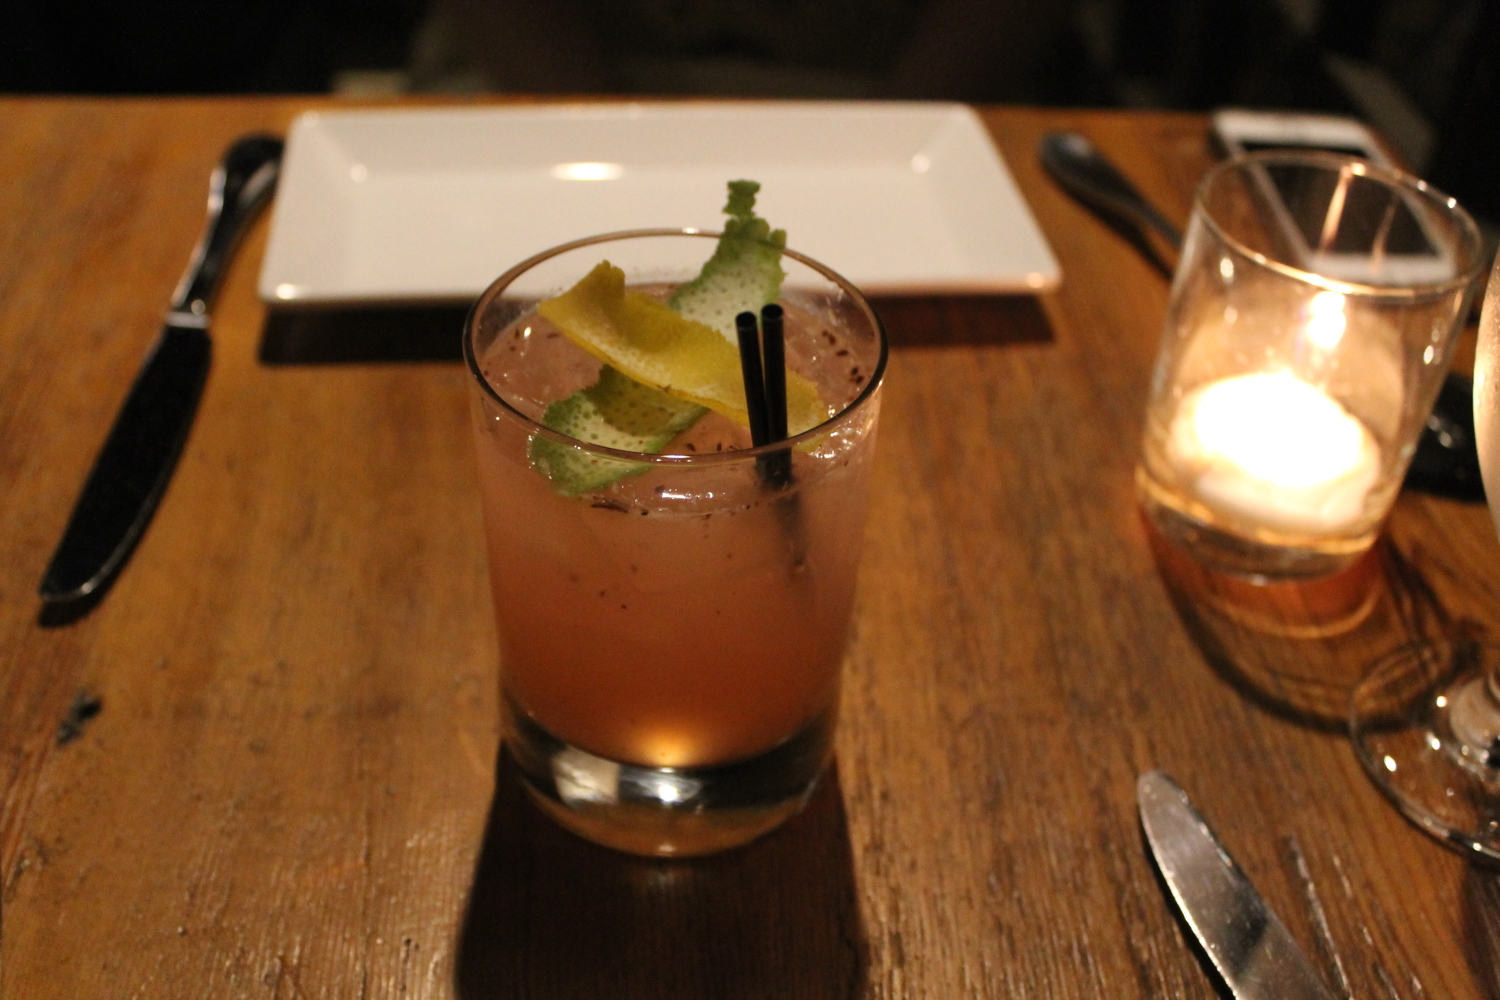 The Cee Tee: Gin, Grapefruit, and Star Anise. I would have loved this drink if I liked star anise (usually made with tarragon).